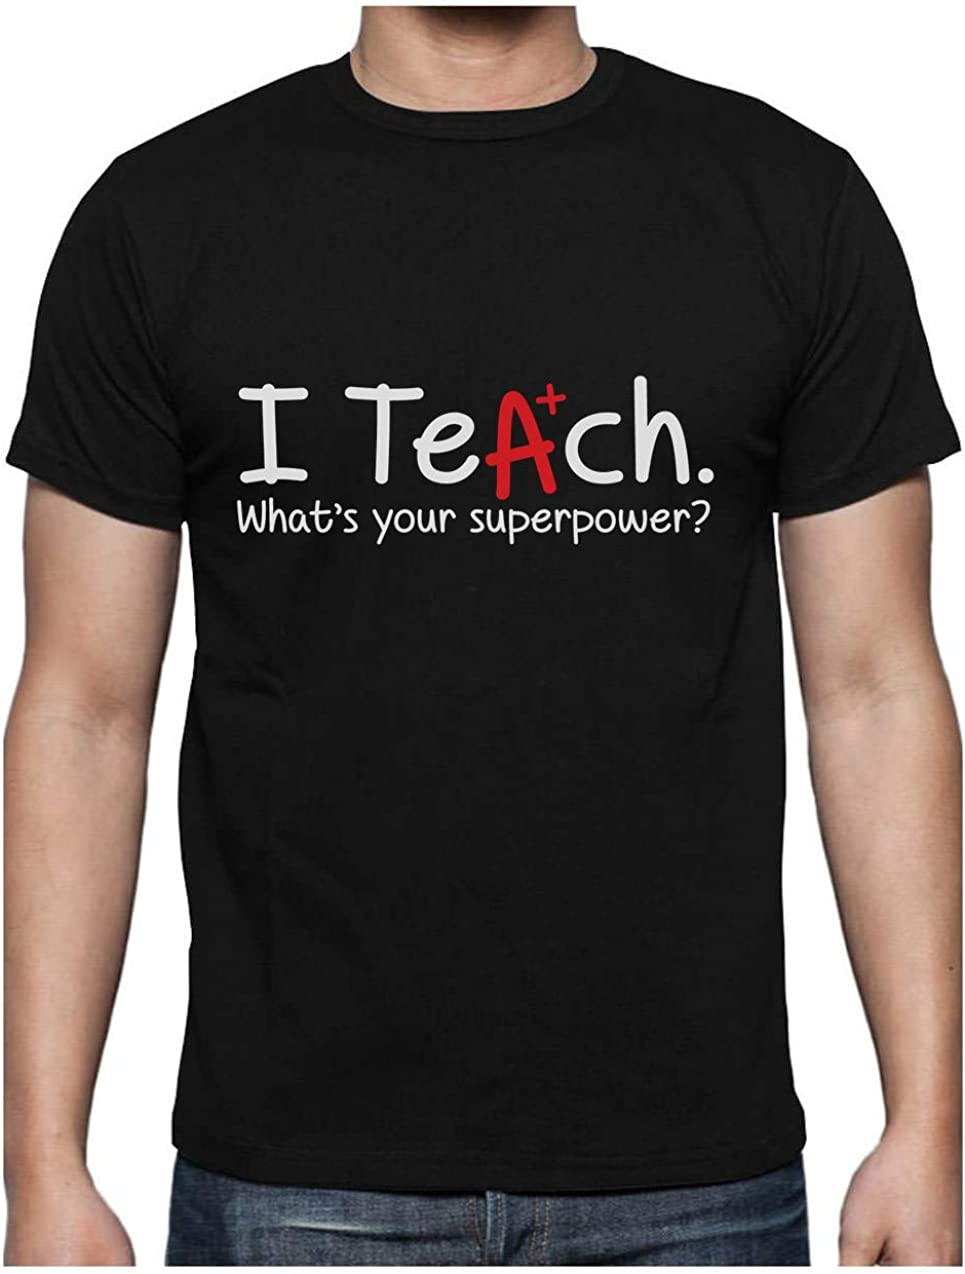 Green Turtle T-Shirts Camiseta para Hombre - Regalo para Profesor - I Teach Whats Your Superpower?